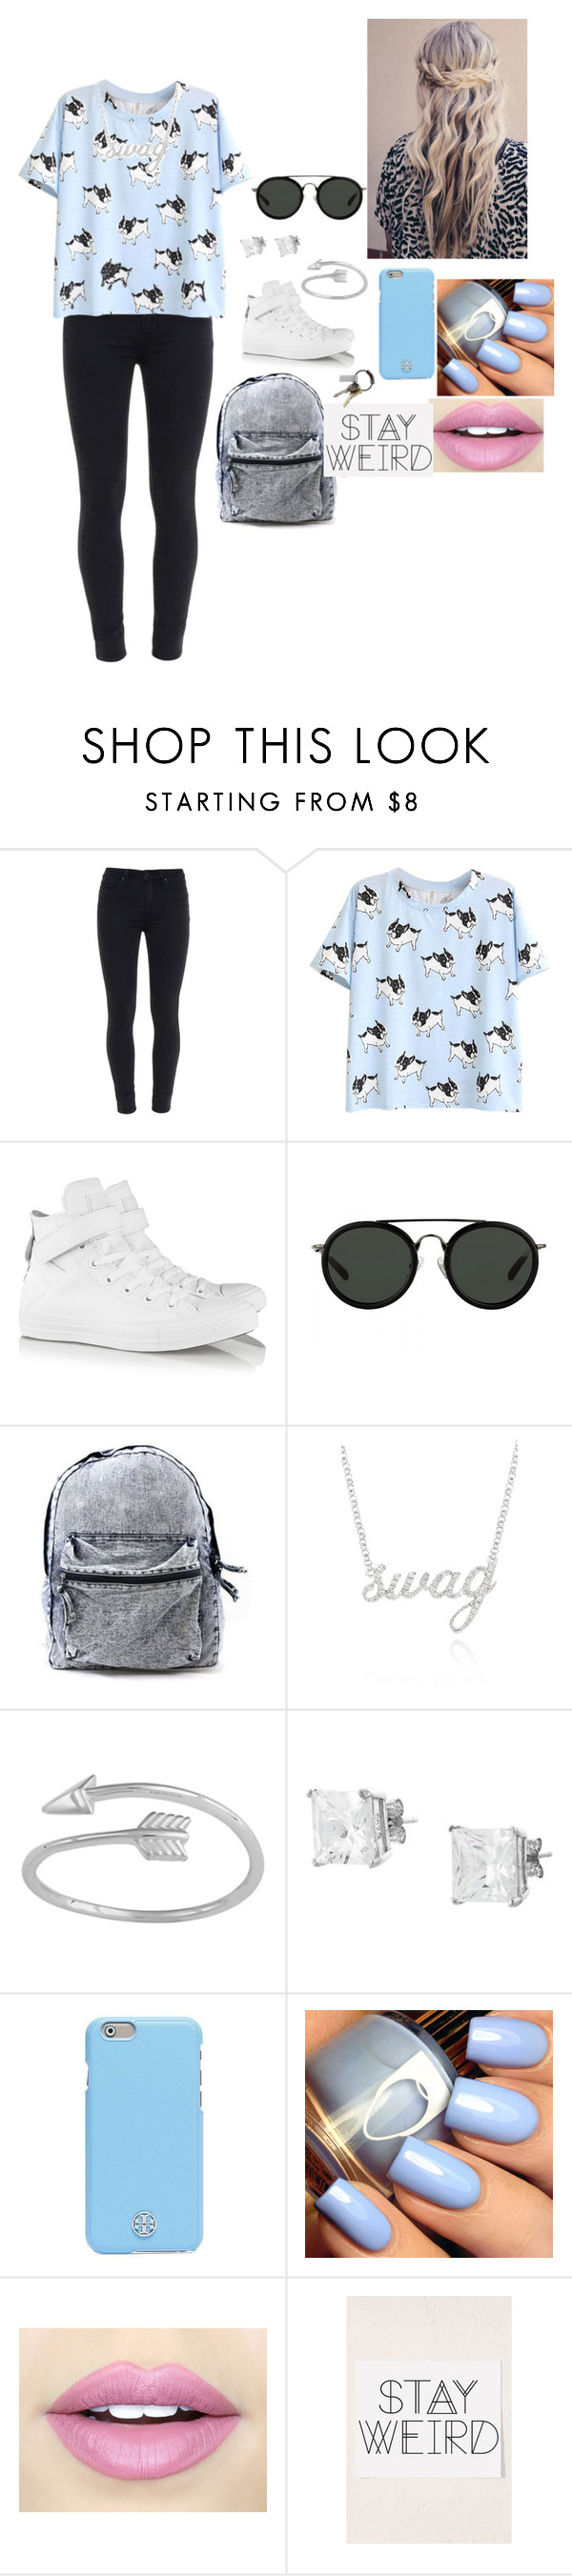 """going to school "" by jchristina ❤ liked on Polyvore featuring interior, interiors, interior design, home, home decor, interior decorating, Paige Denim, Converse, Dries Van Noten and Belk & Co."